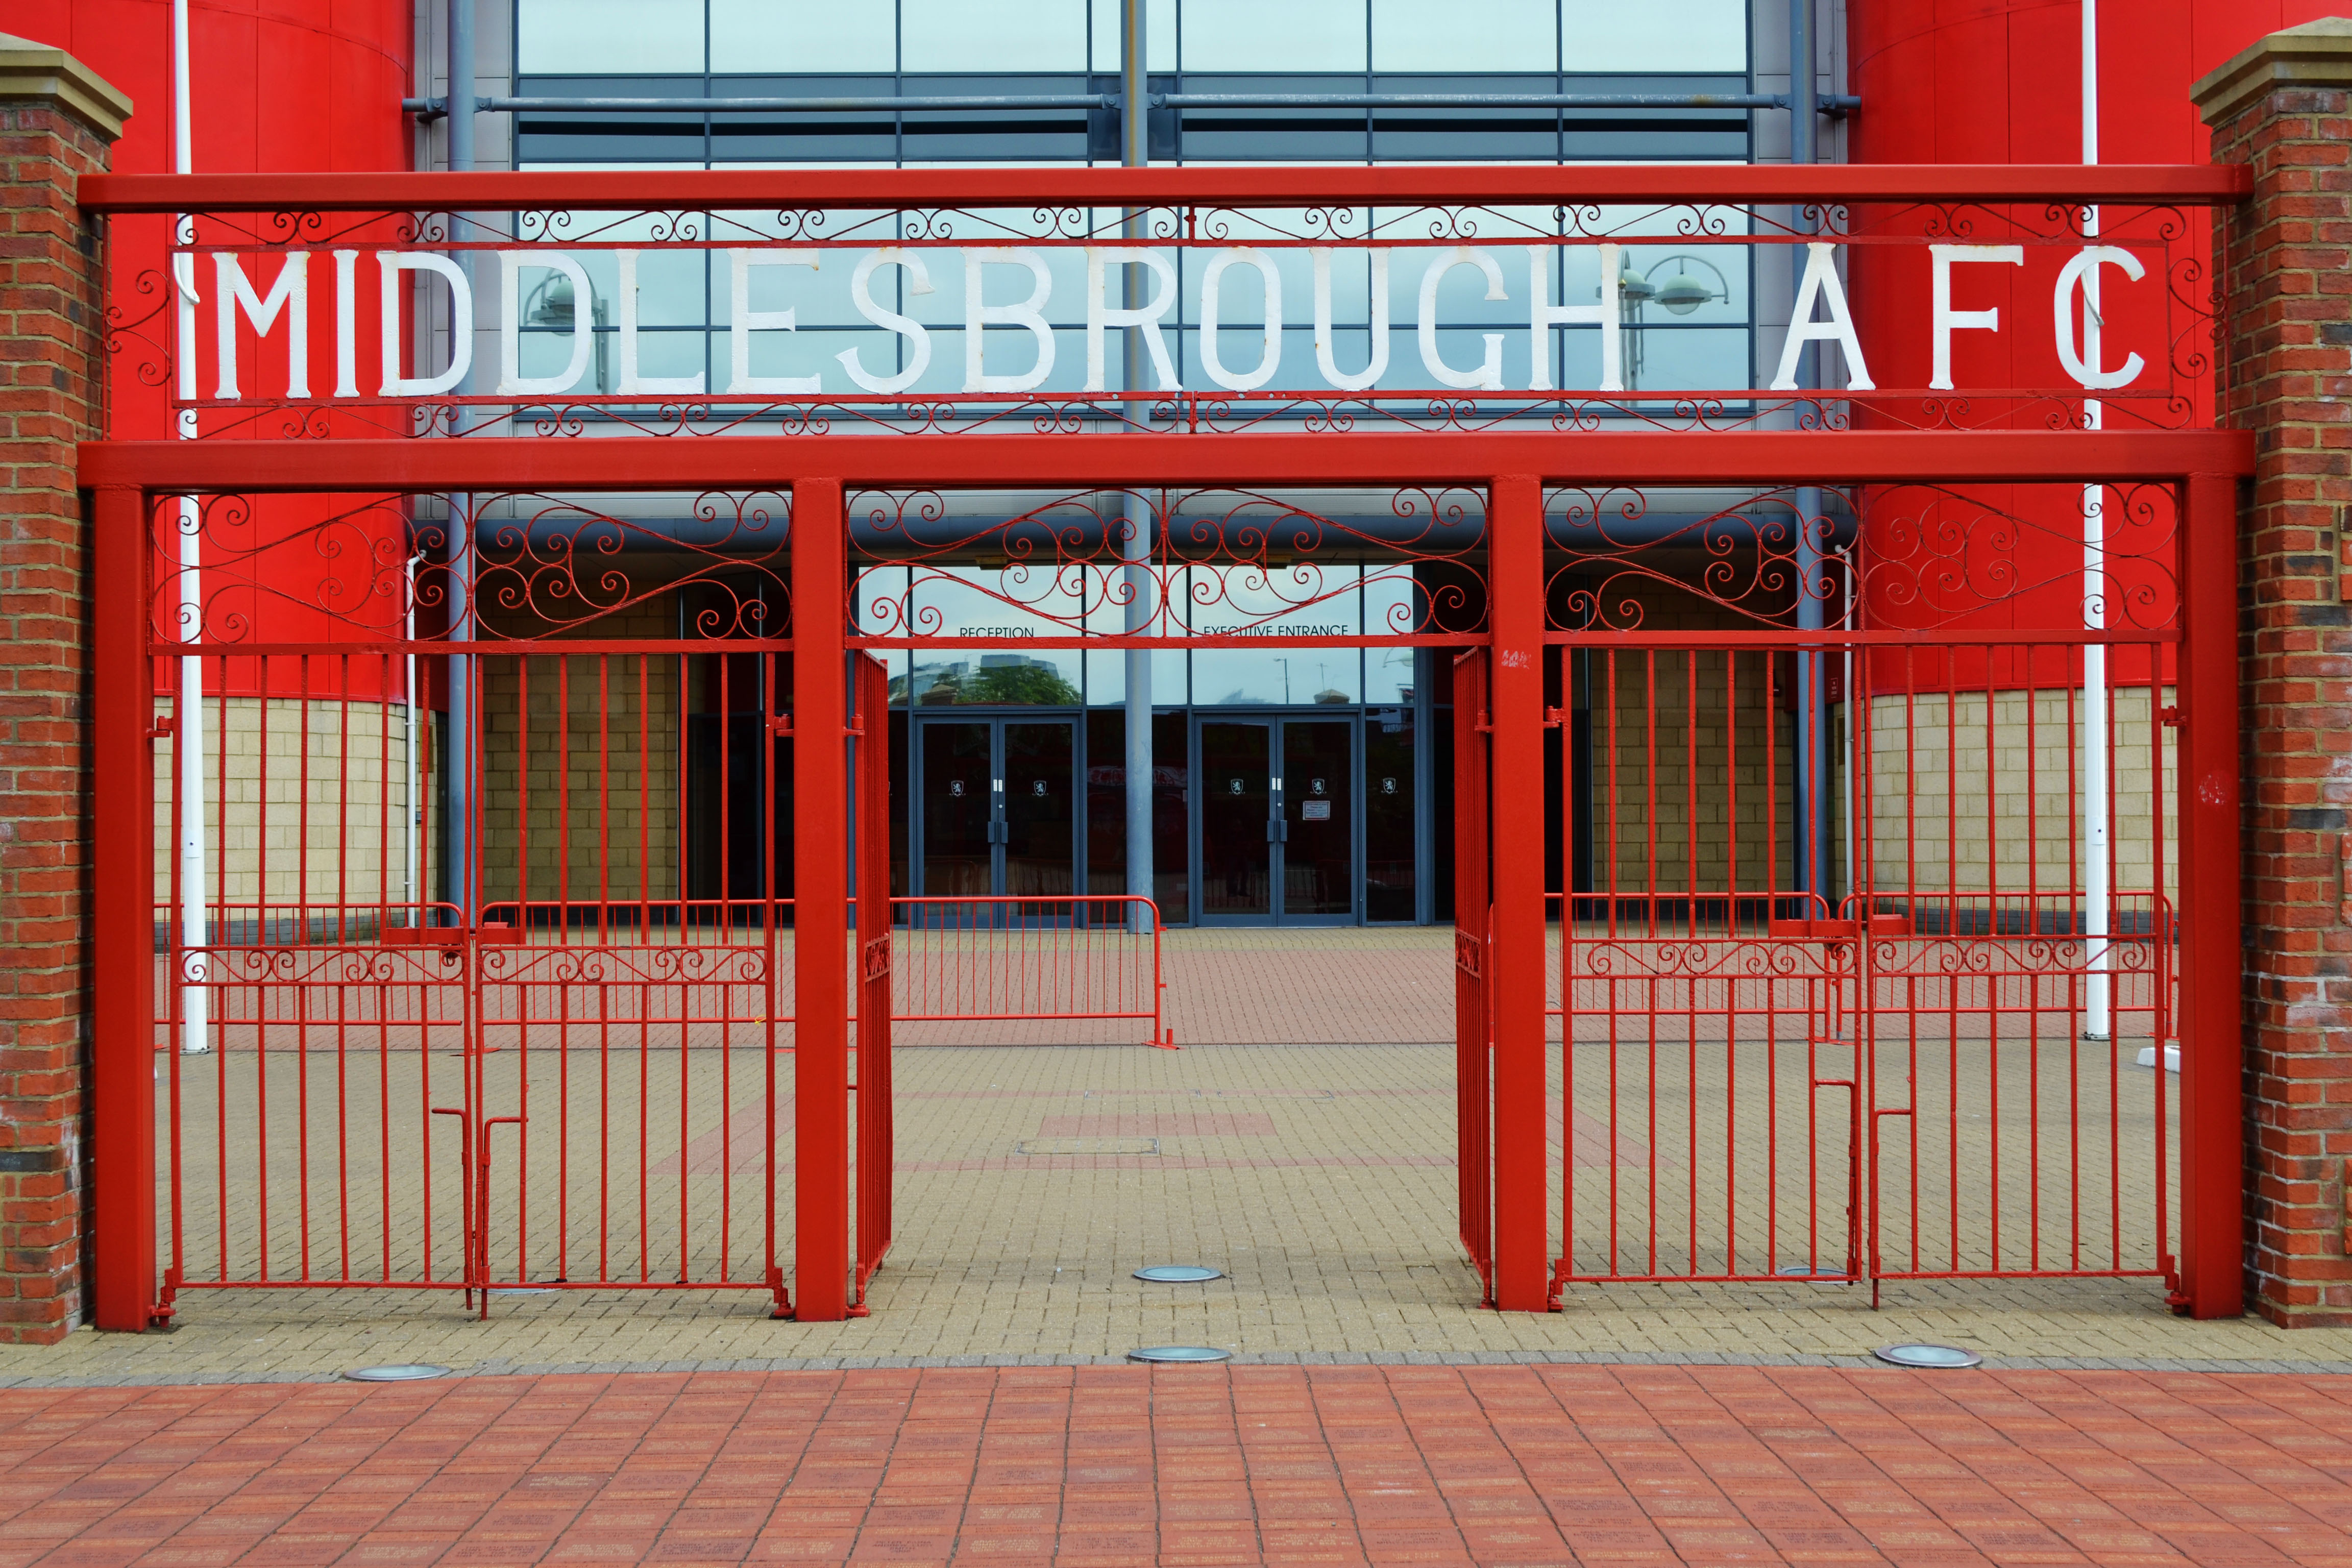 The Unofficial Guide to Middlesbrough